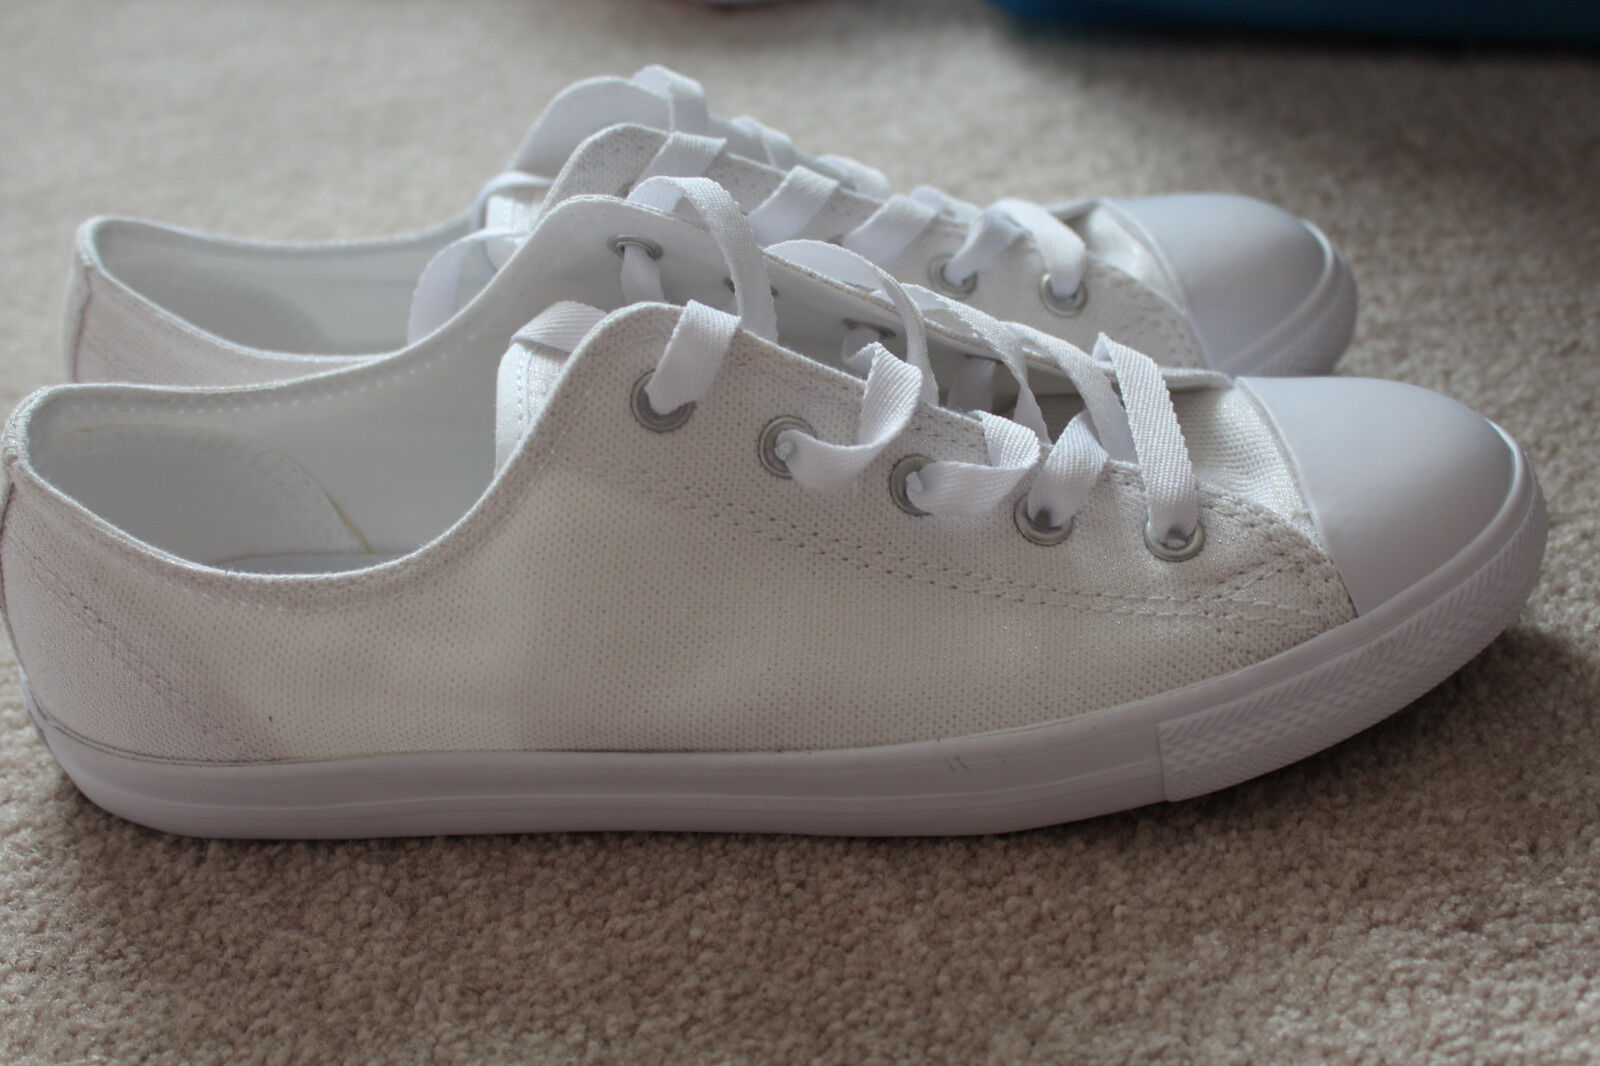 NEW CONVERSE SNEAKERS LOW-TOP Weiß 9 SHINY sz US 9 Weiß d4aa75